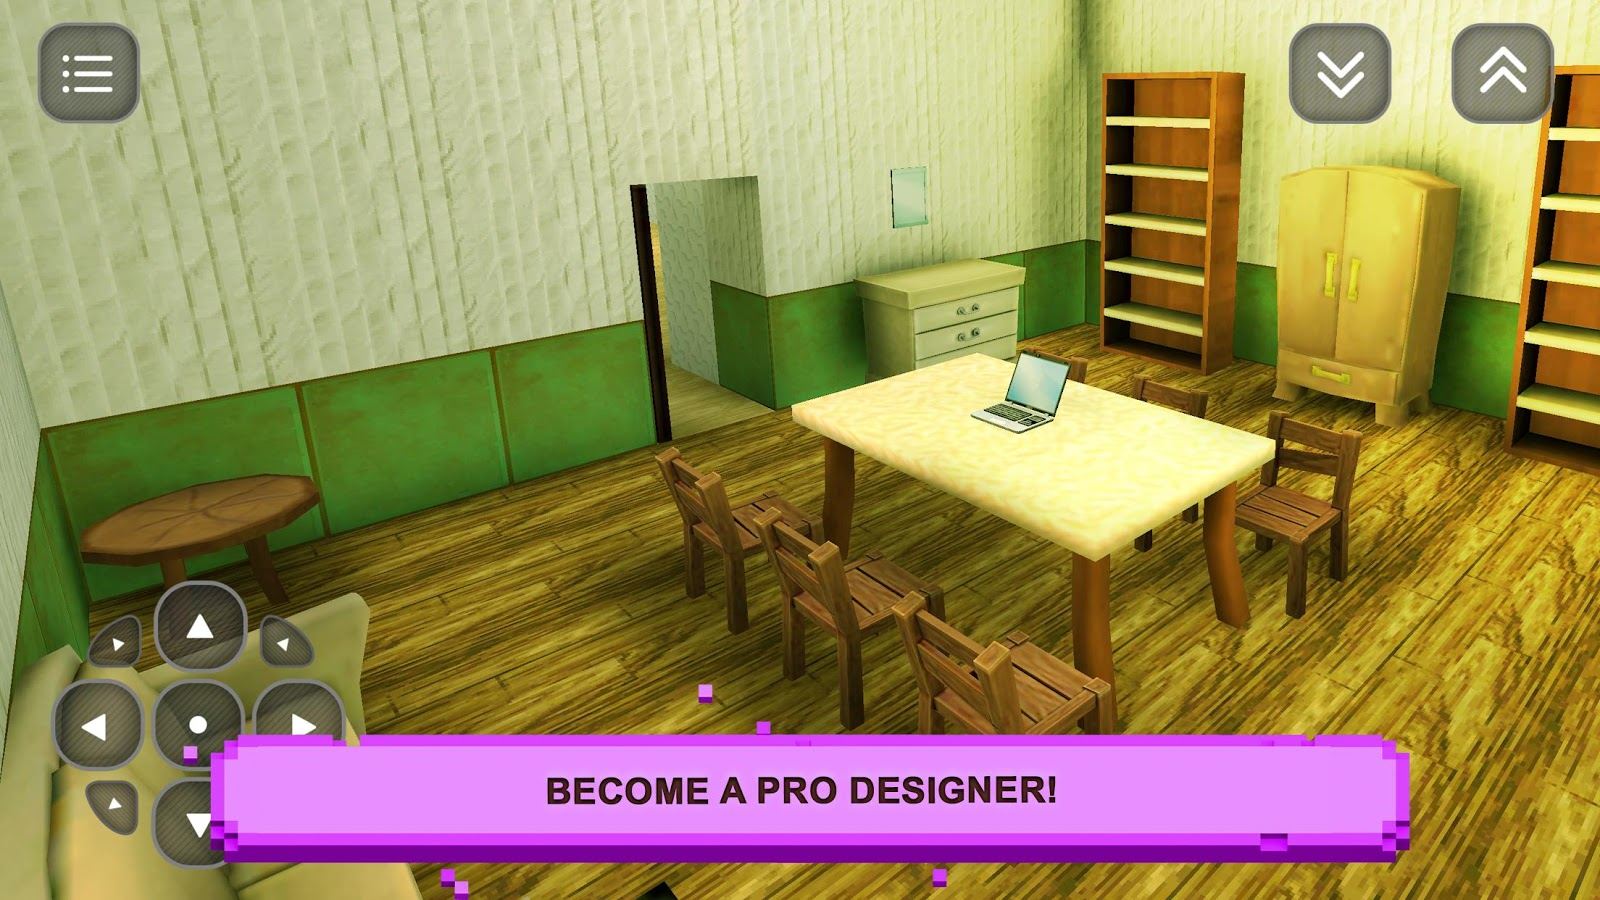 Sim Girls Craft: Home Design hack,Sim Girls Craft: Home Design cheats,Sim Girls Craft: Home Design hack Cash,Sim Girls Craft: Home Design unlimited Cash,